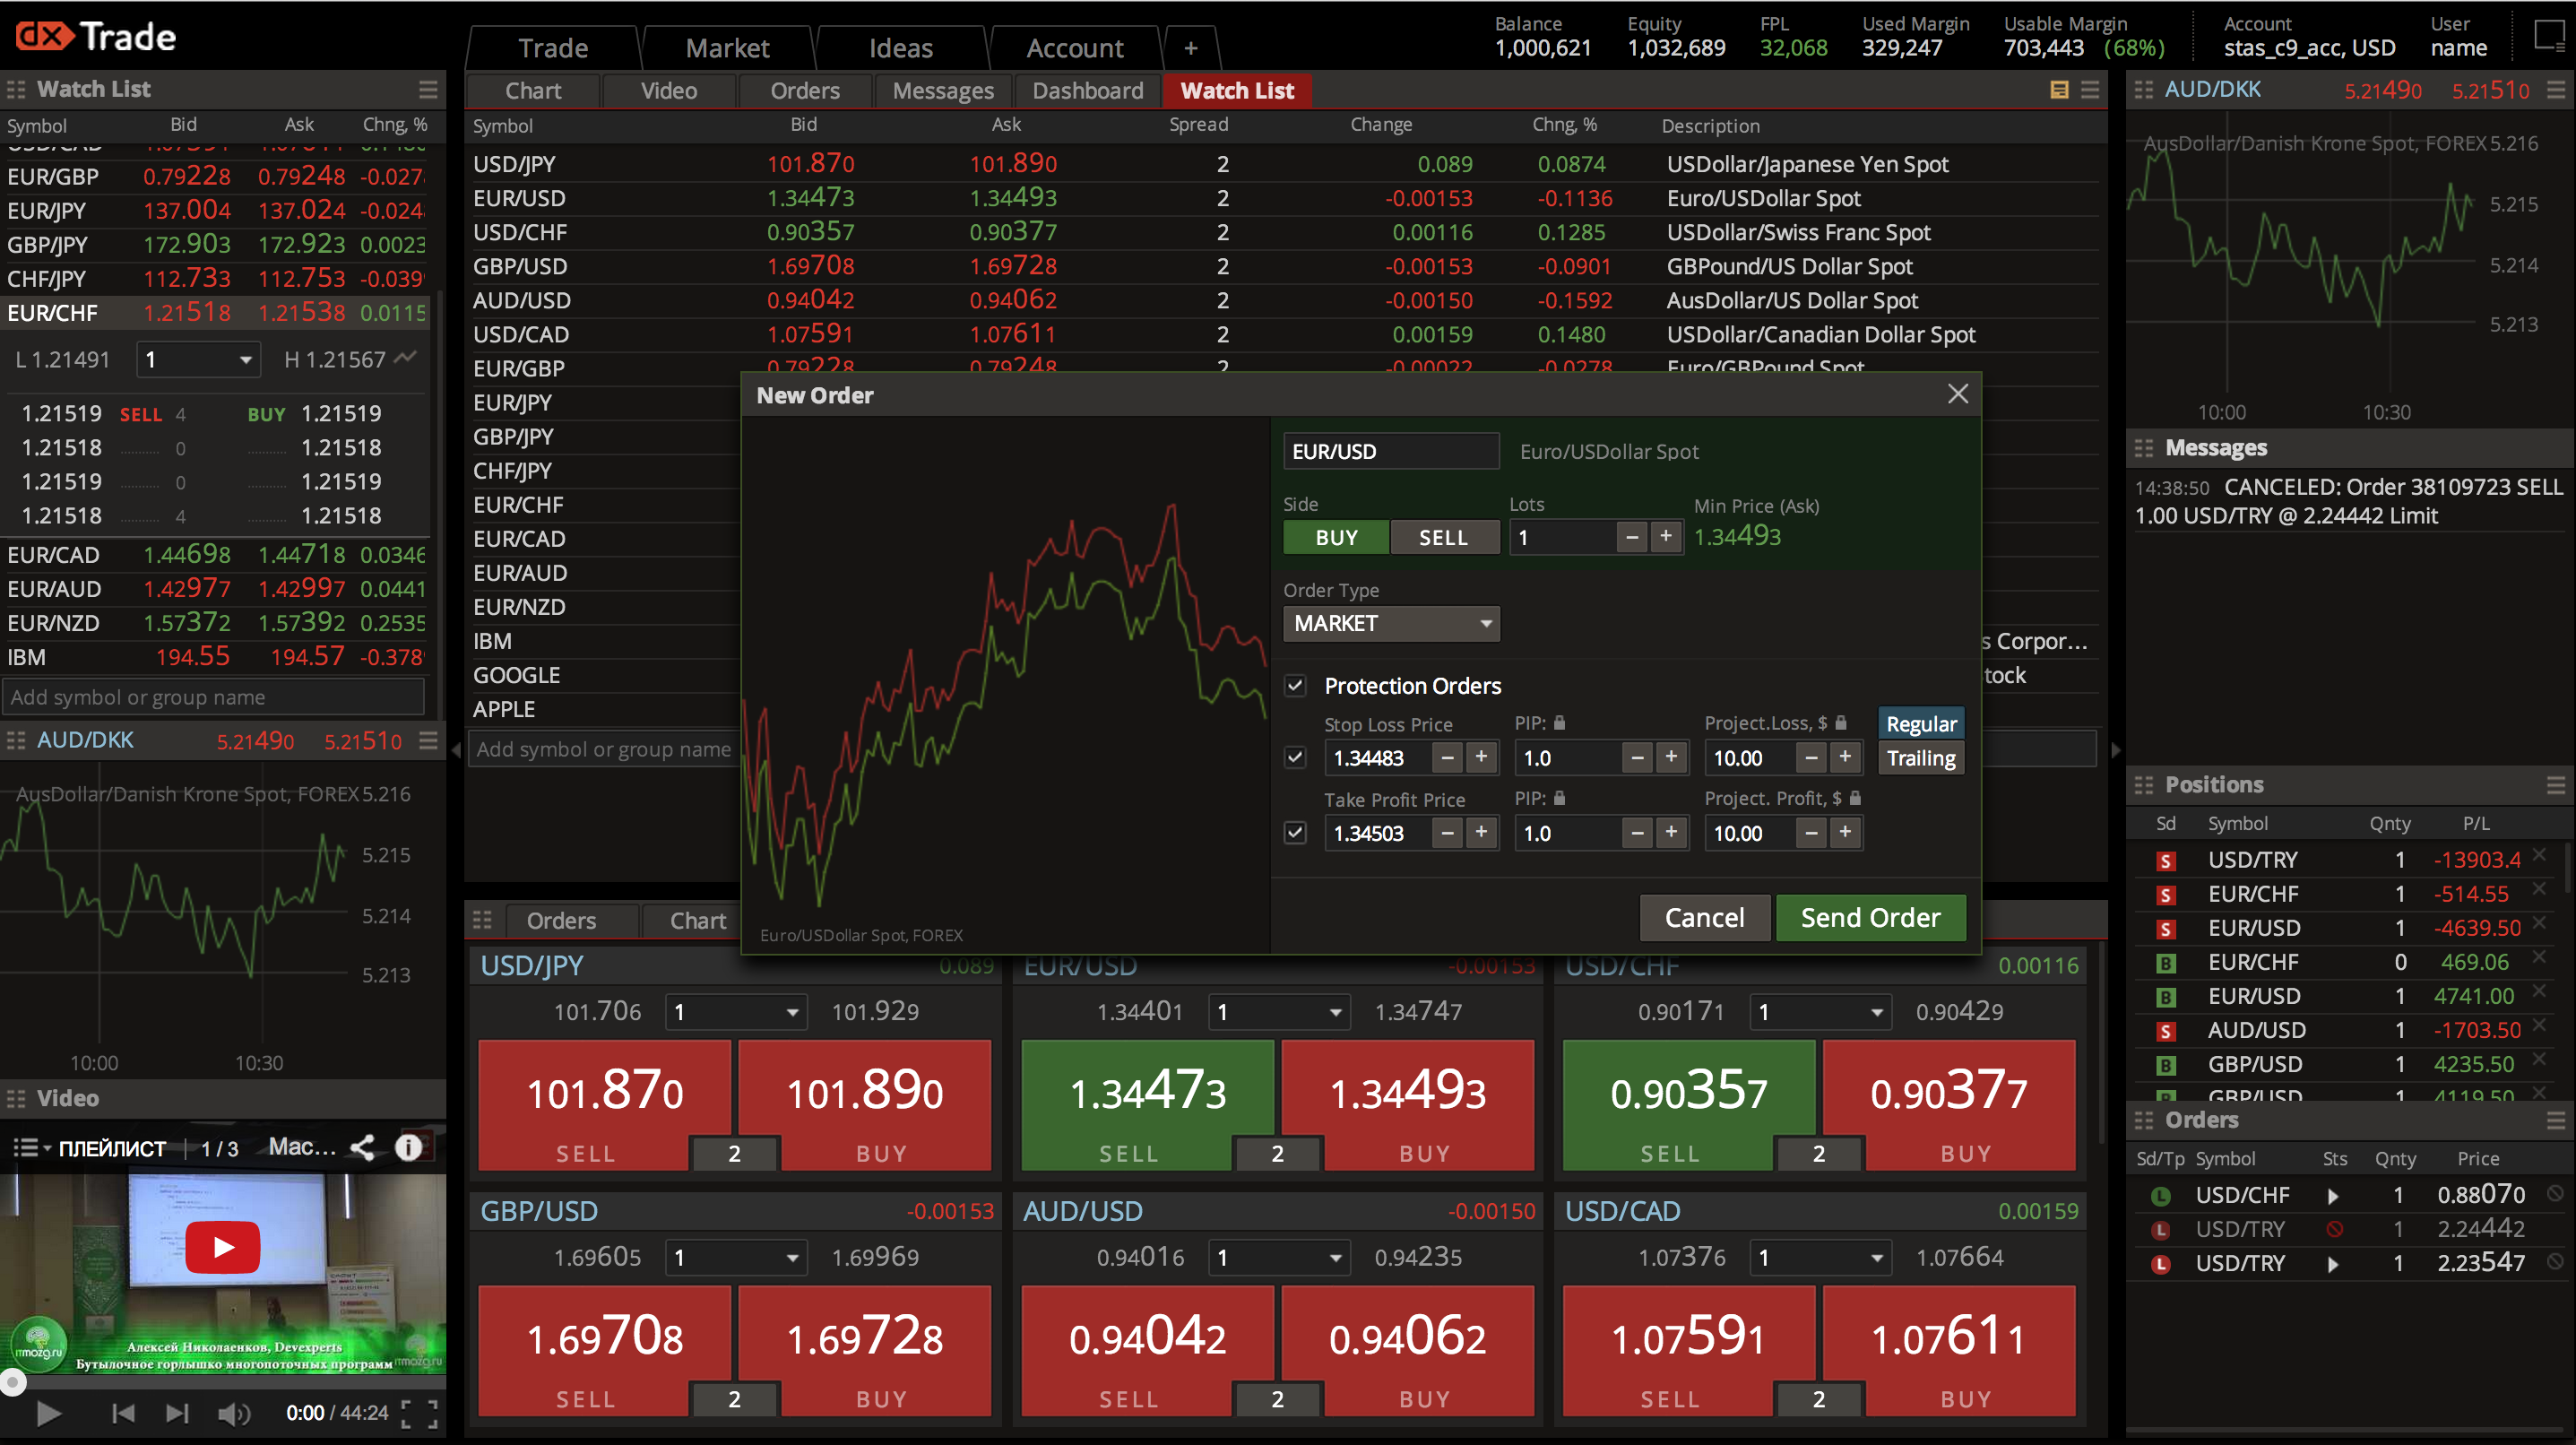 Launch icts forex web trading